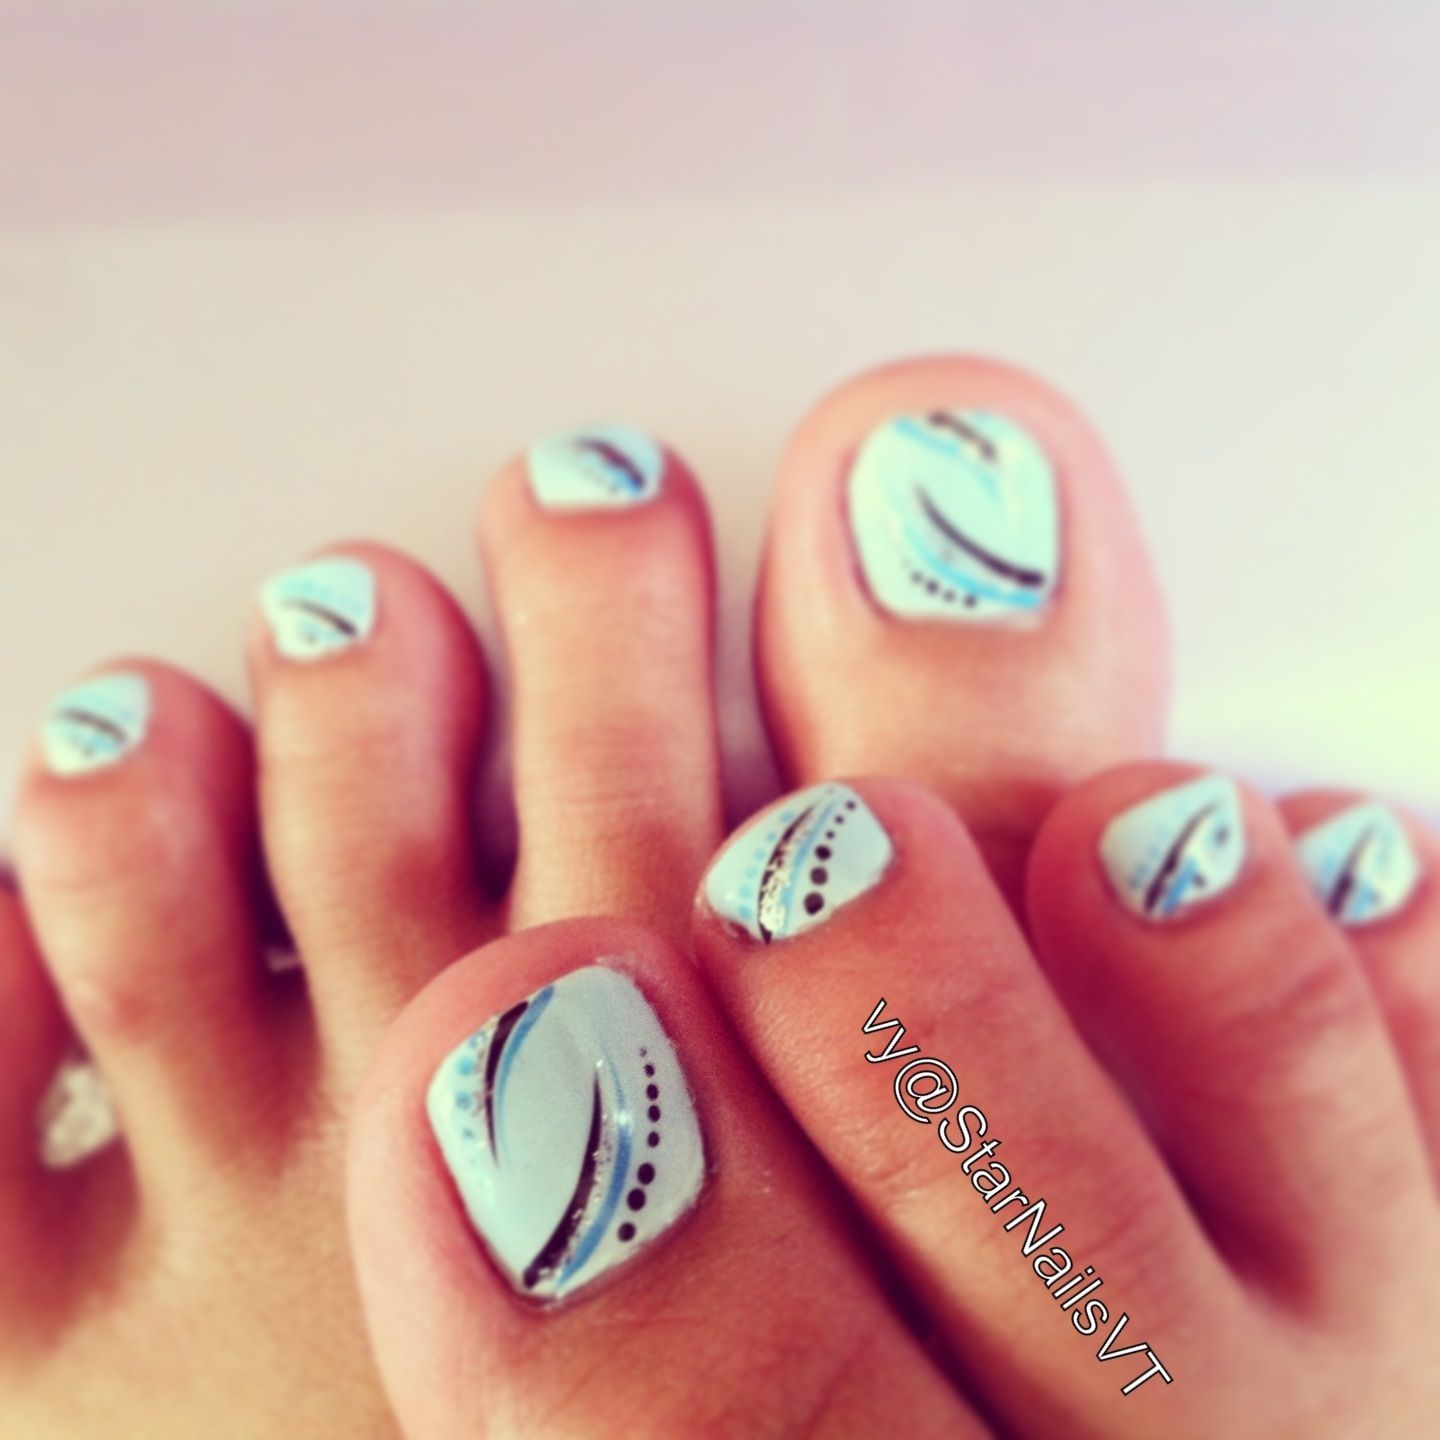 Pedicure Toe Nail Art Light Blue Polish With Black And Blue